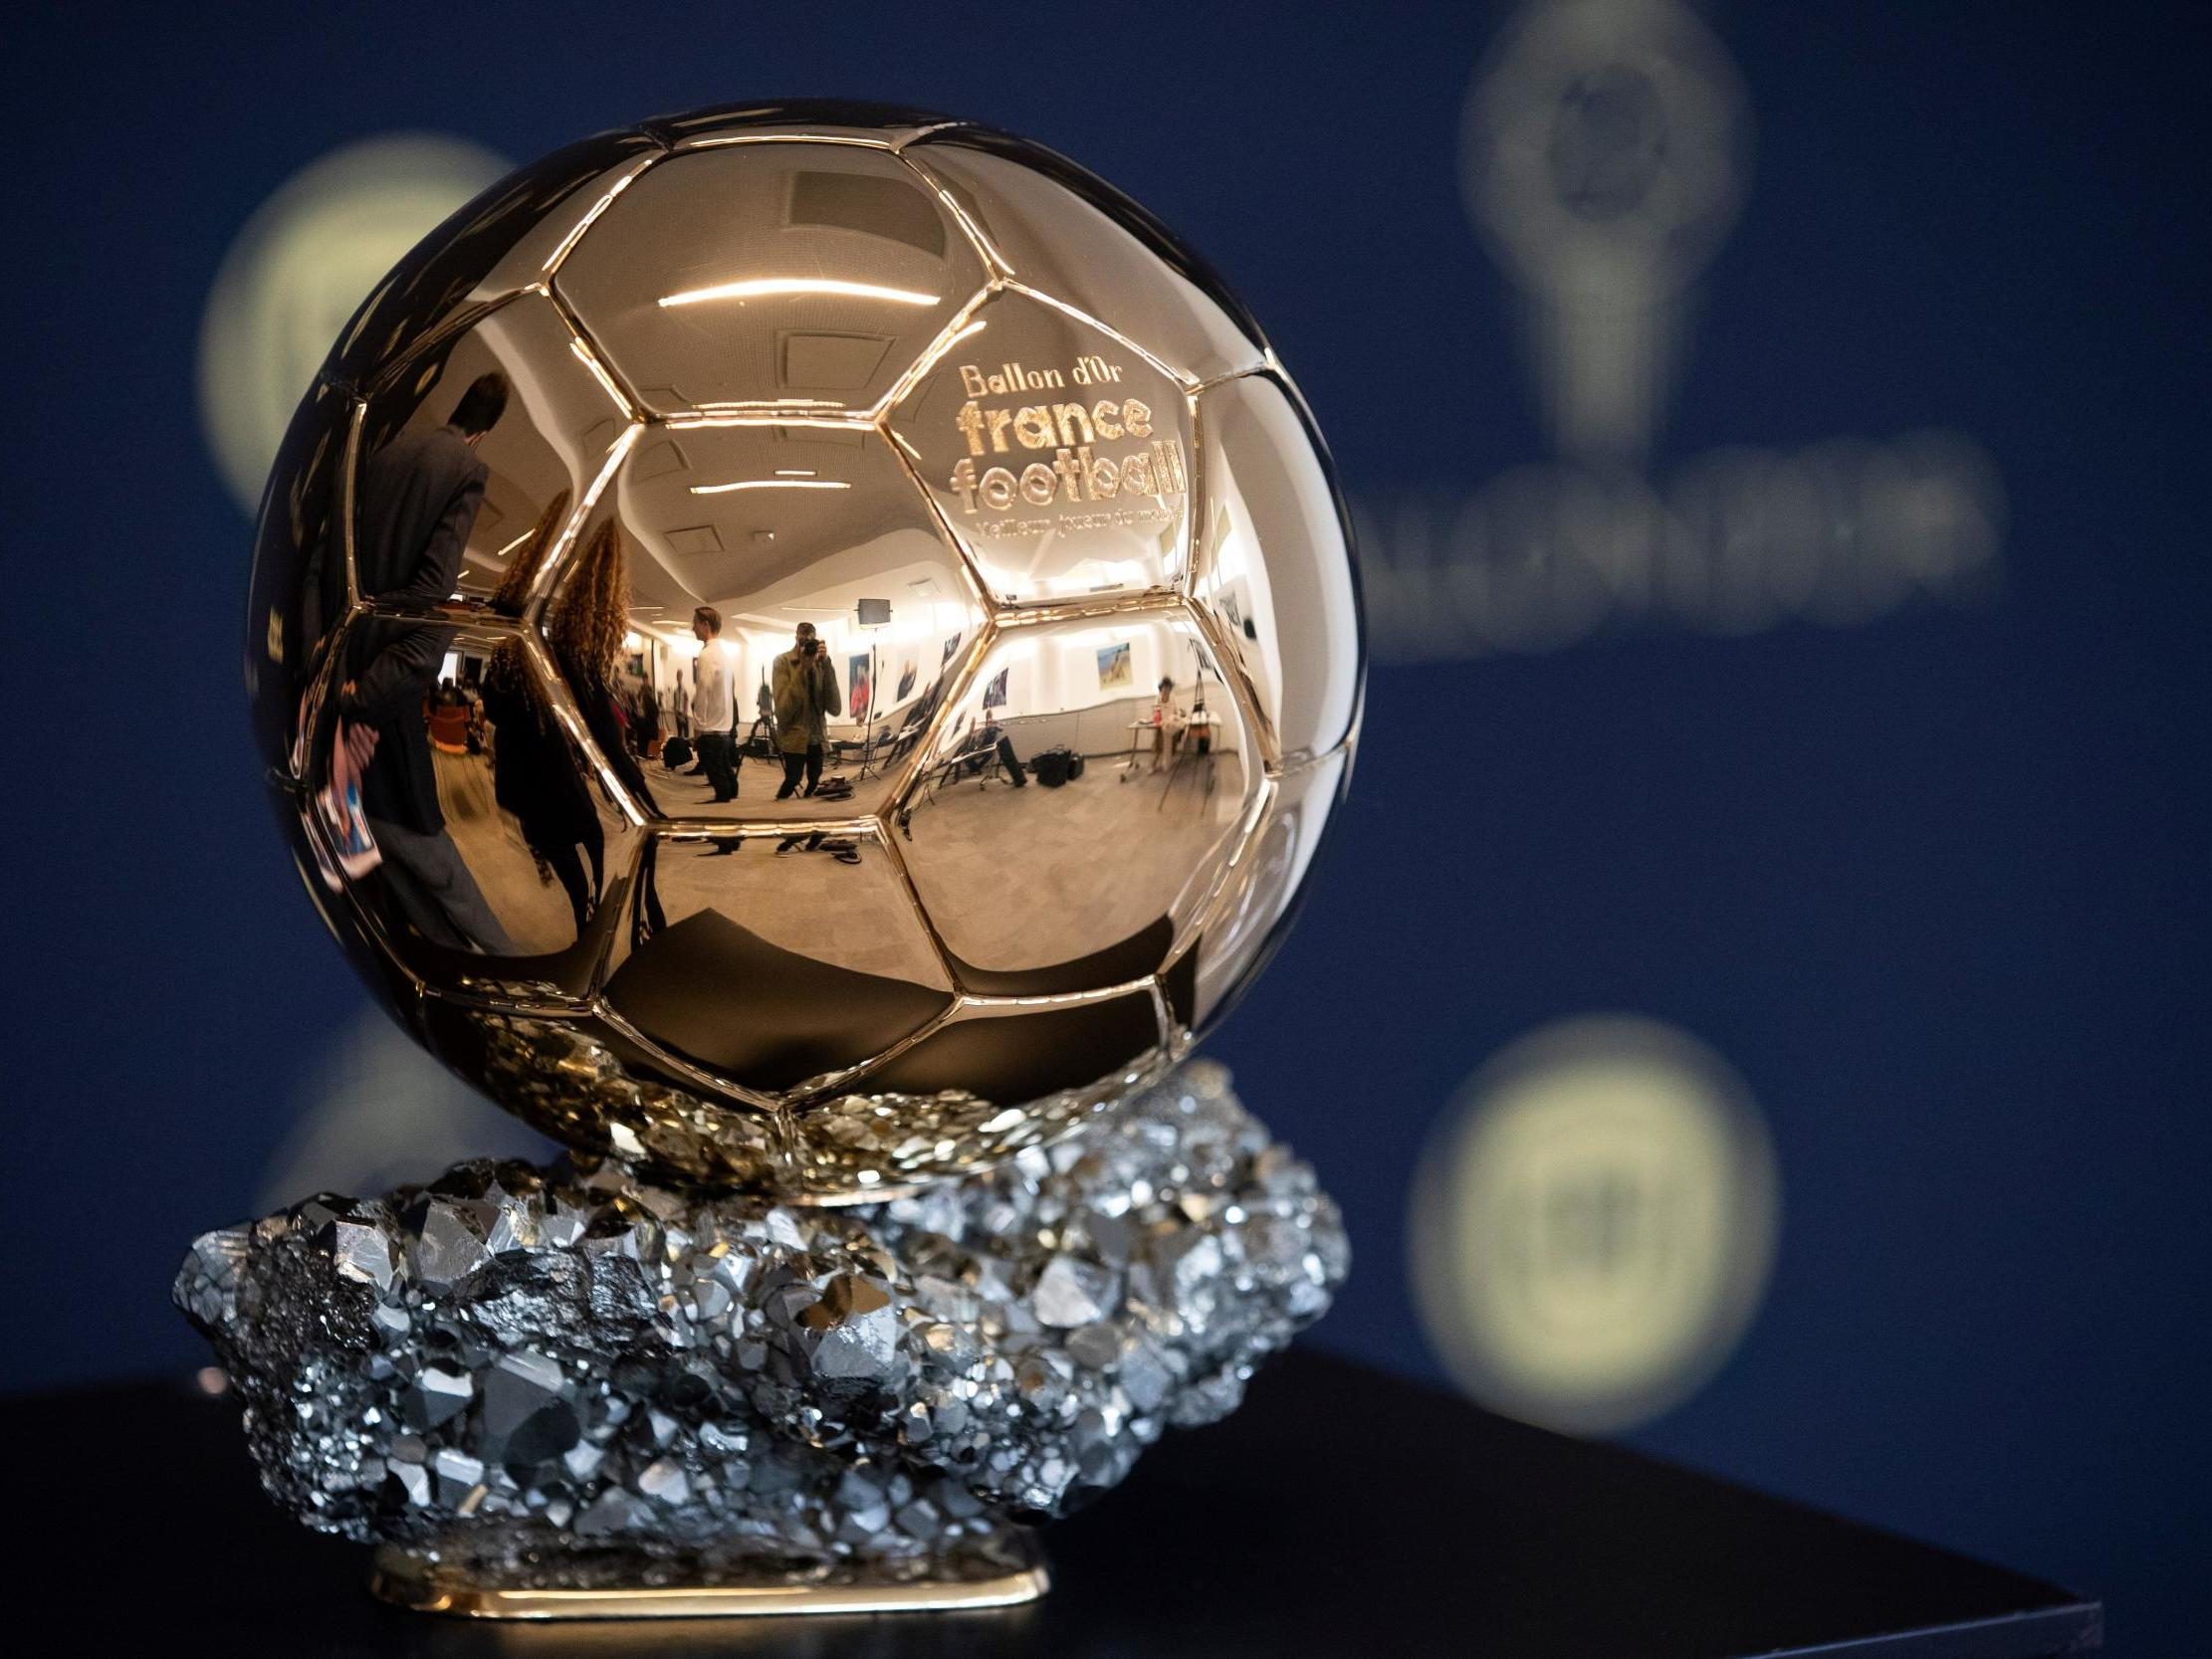 Ballon d'Or 2019: Time, ceremony schedule and more